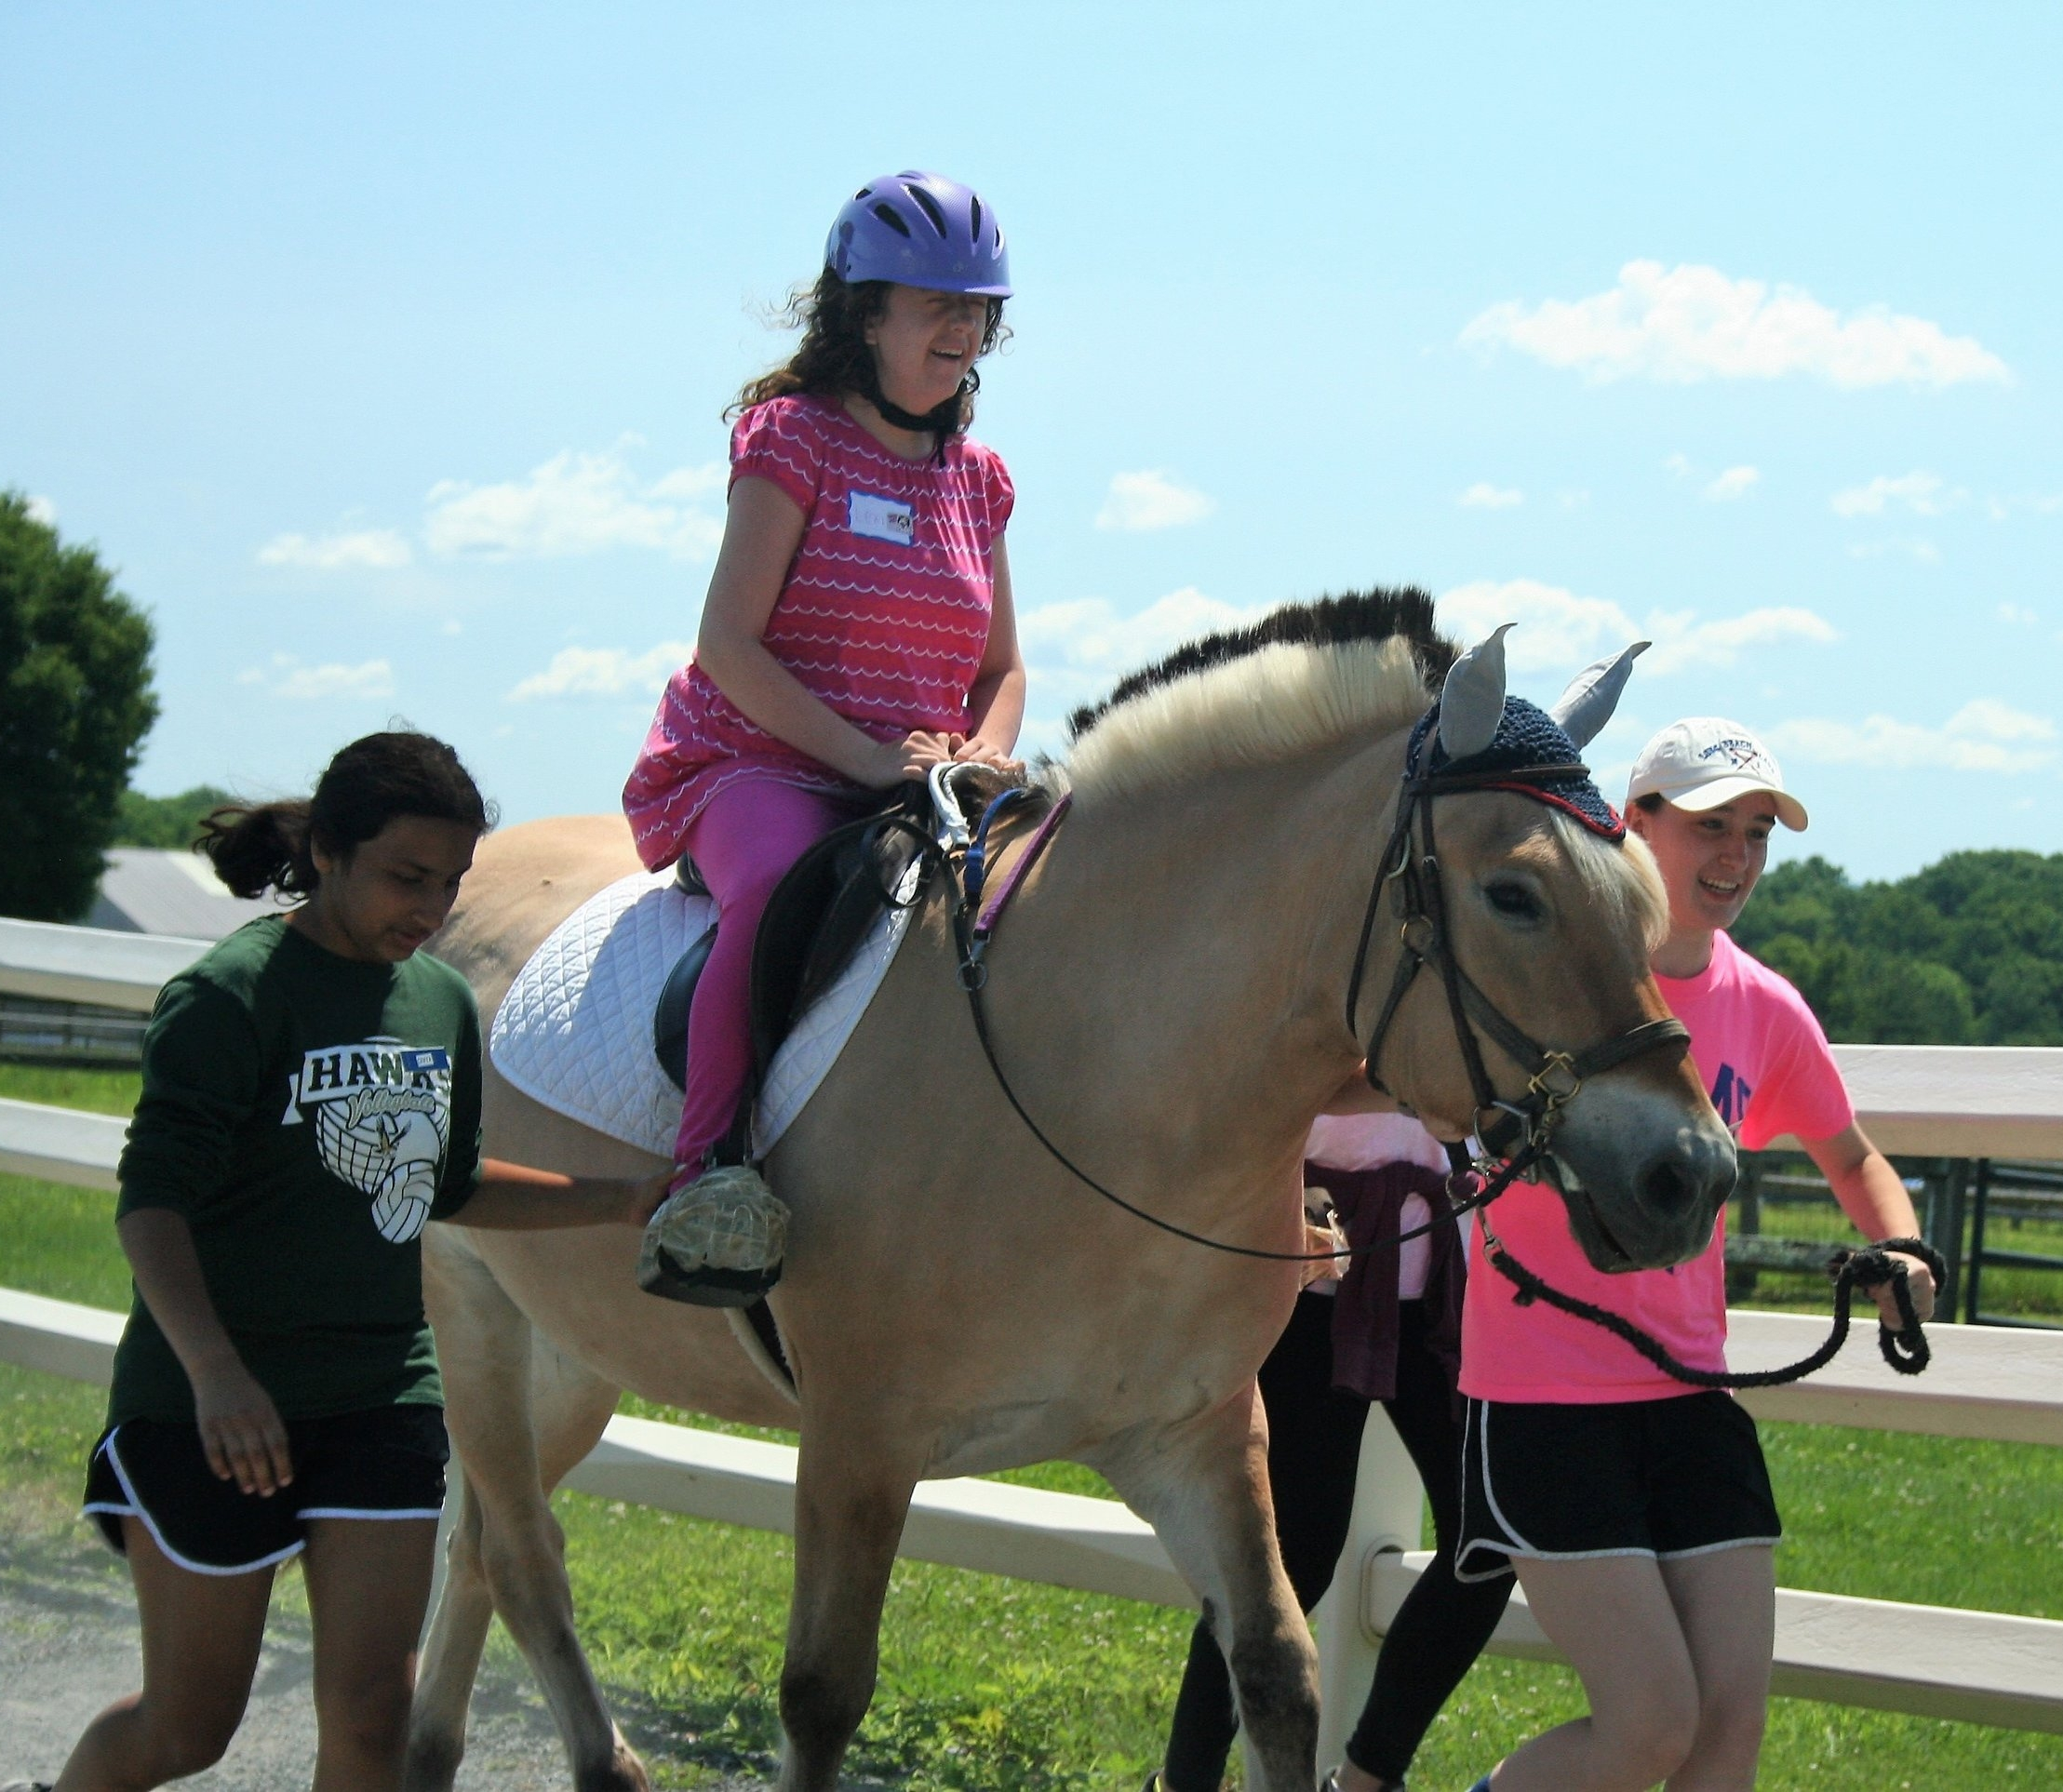 Lexi on Minnie trotting with the assistance of her volunteer buddies.